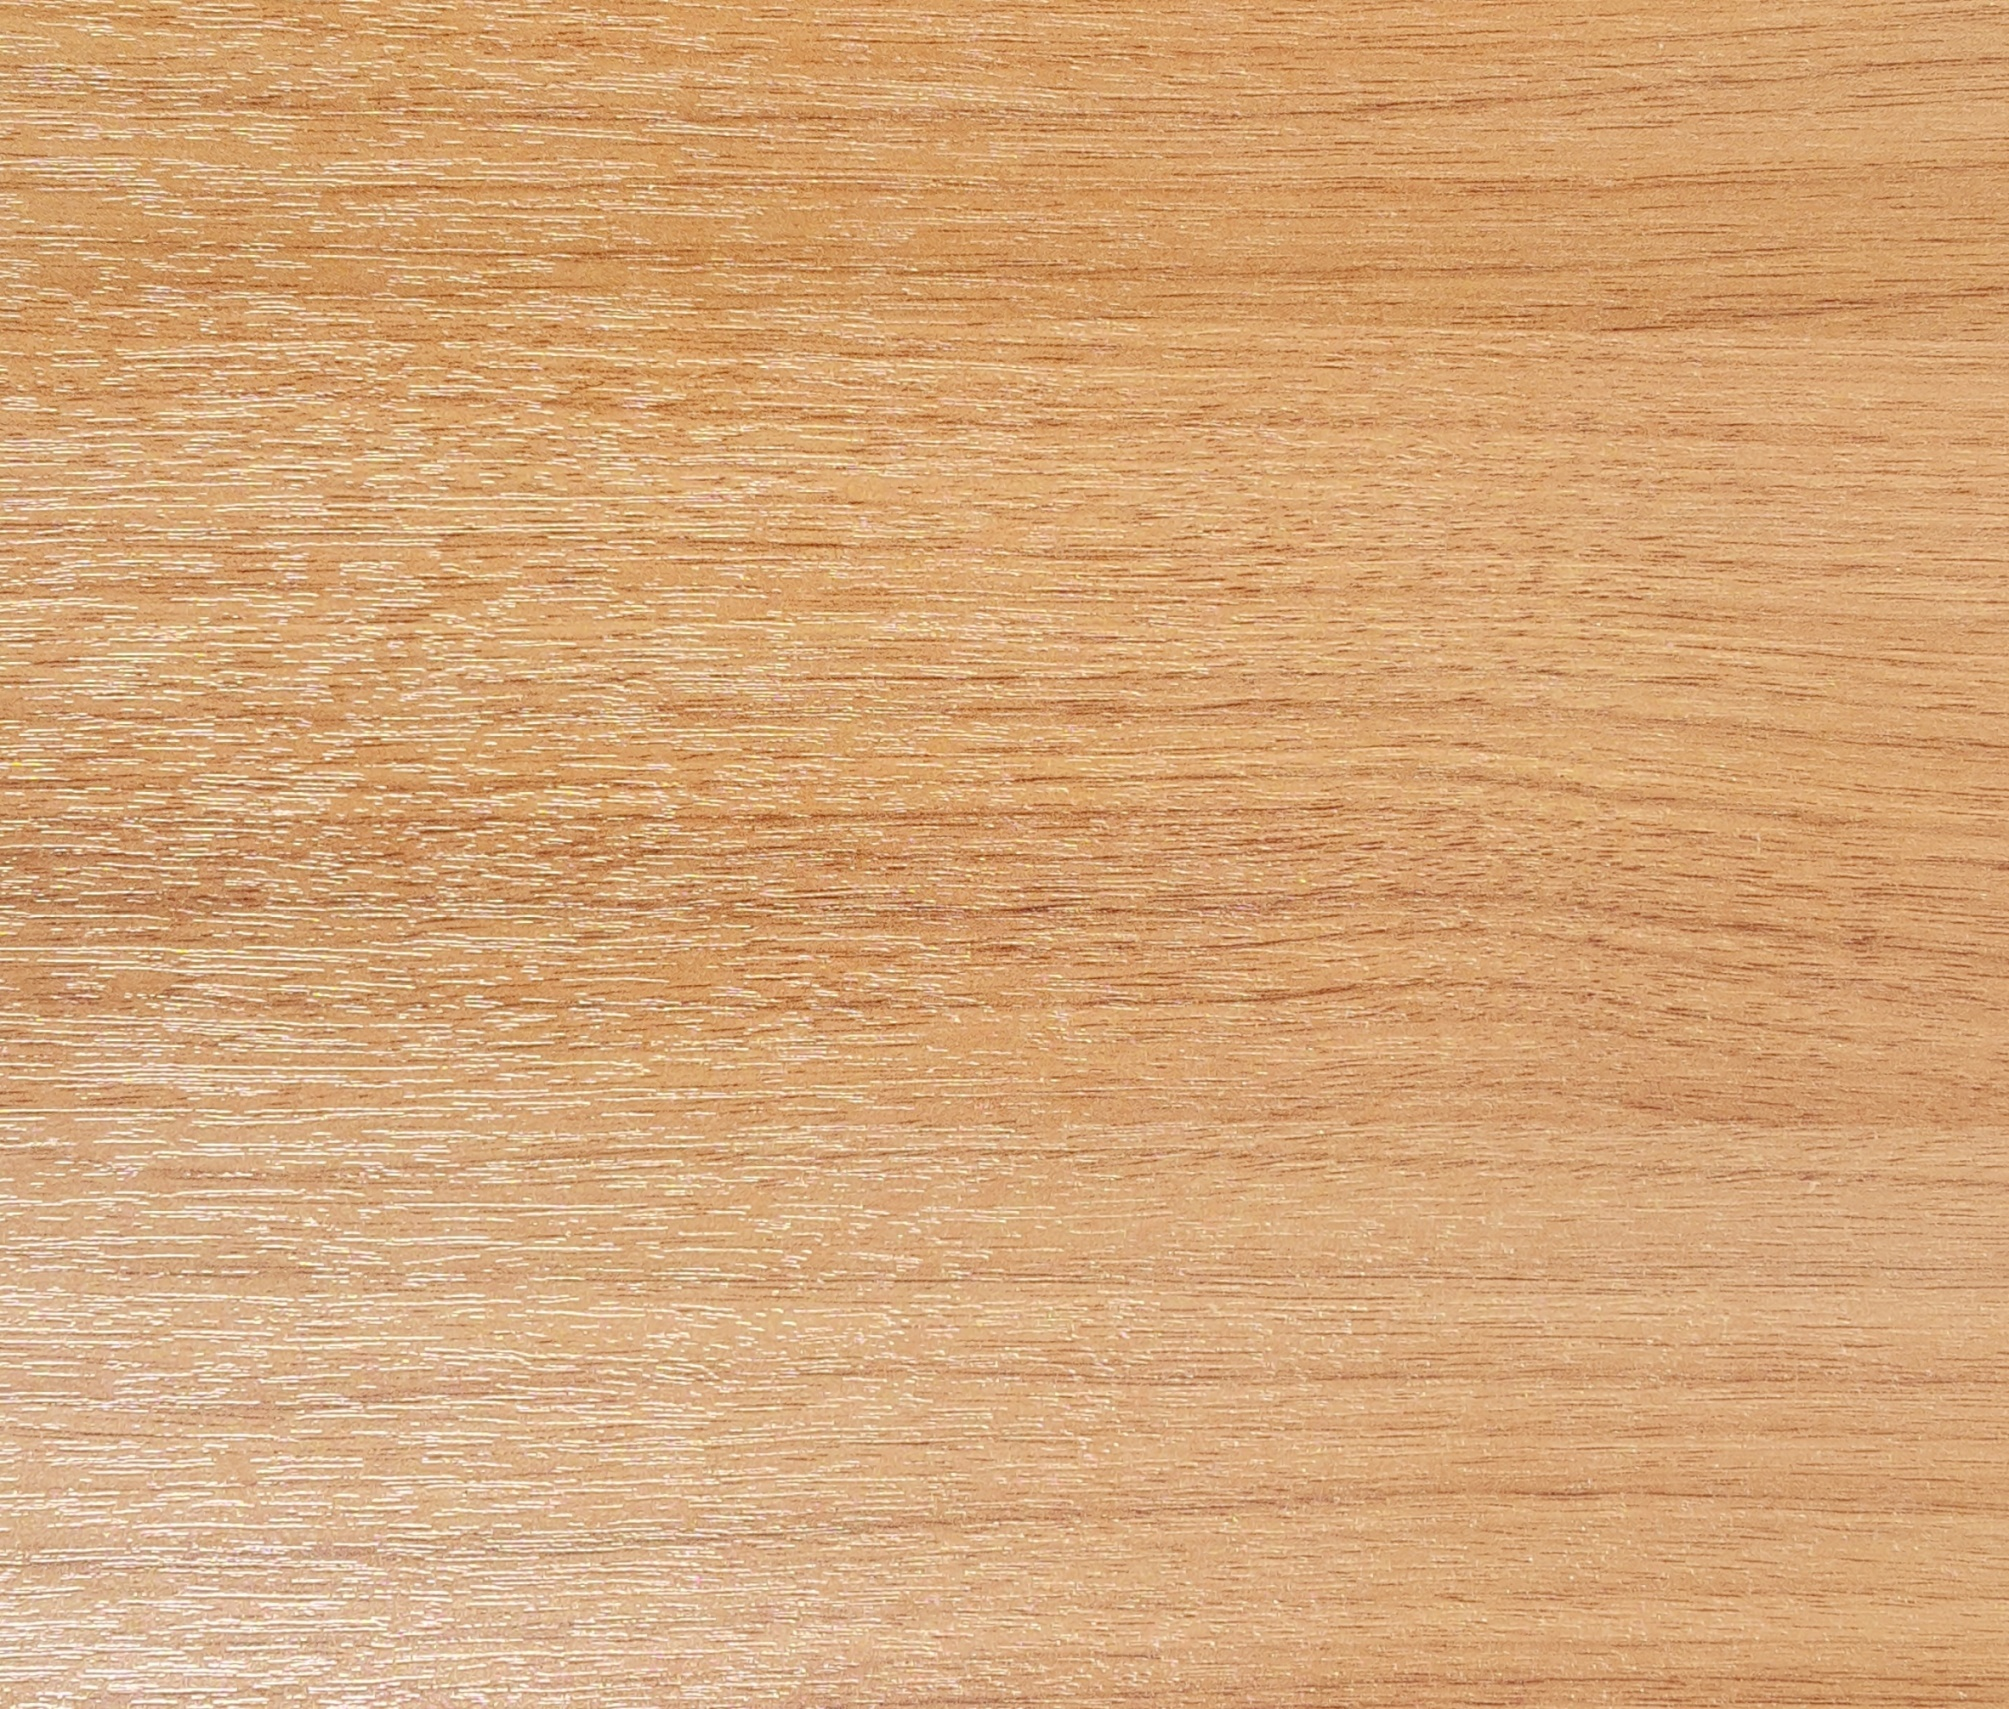 Particle Board Efficeint Material For Furniture